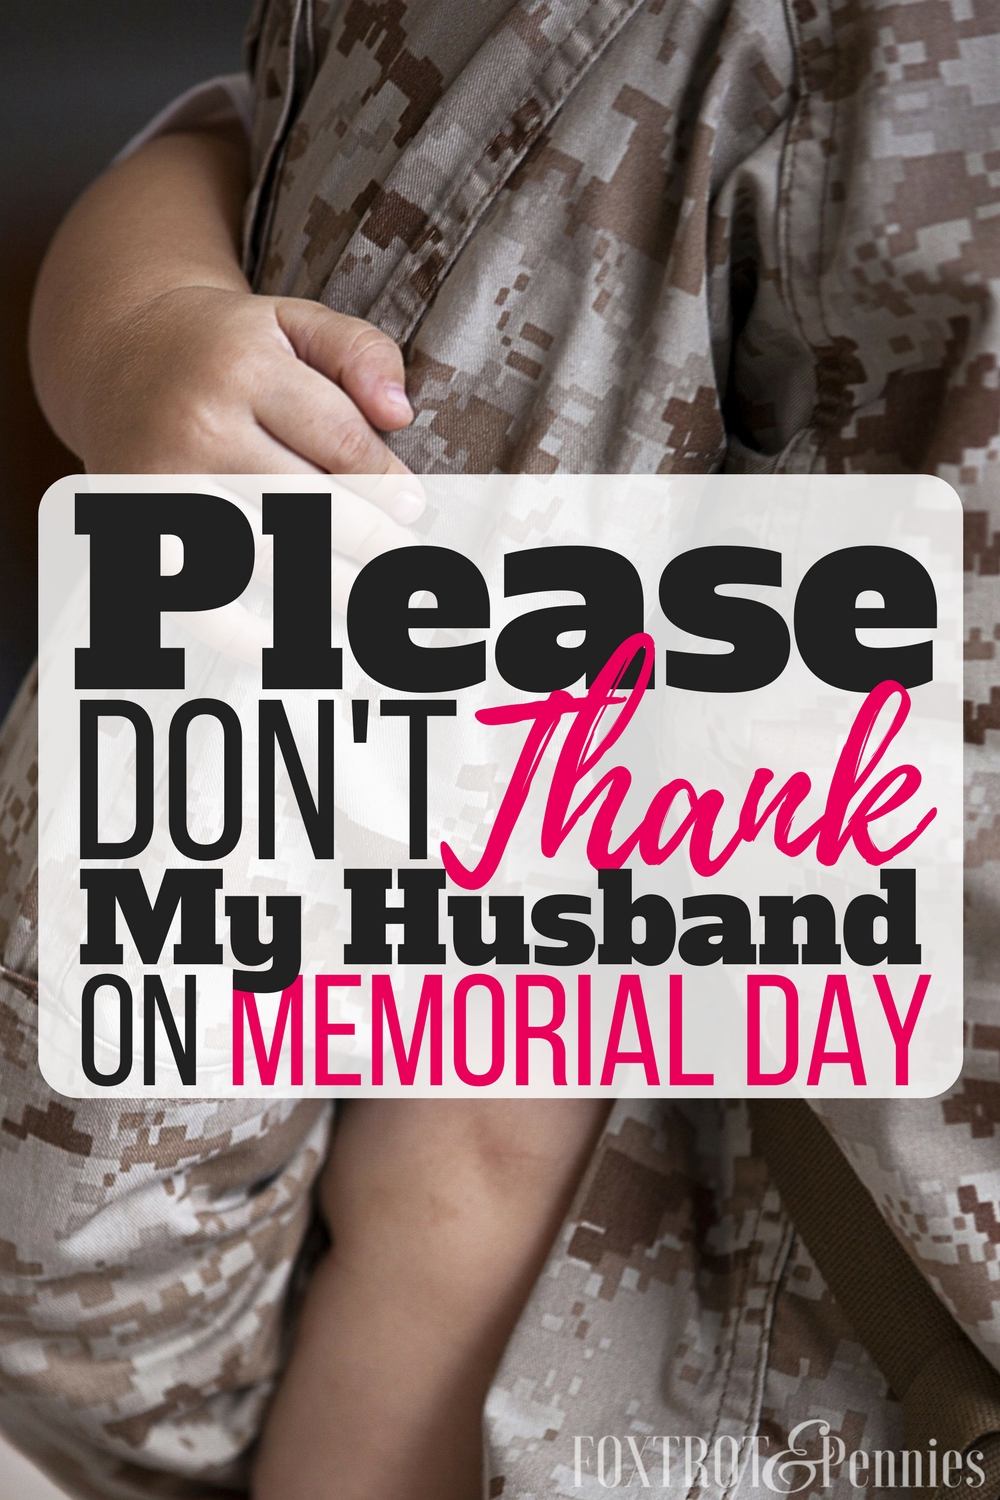 Yes, this is so true! Such an honest article about the difference between Memorial Day and other military appreciation days-- so glad this was said!